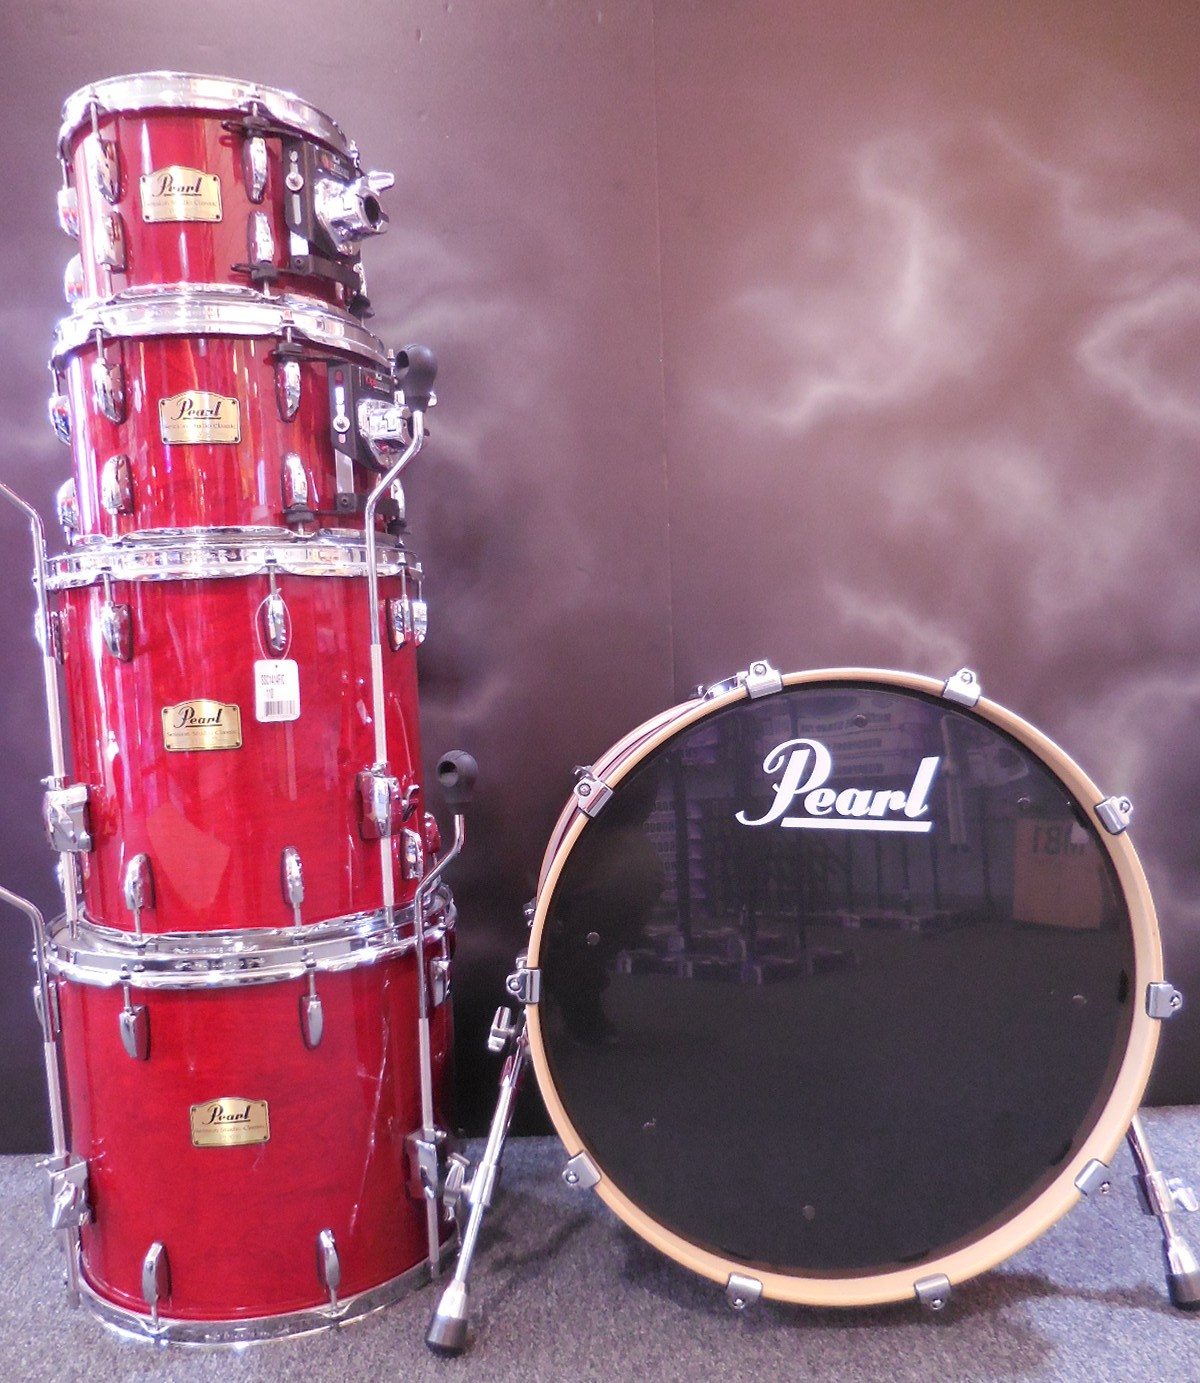 Pearl - SSC Session studio